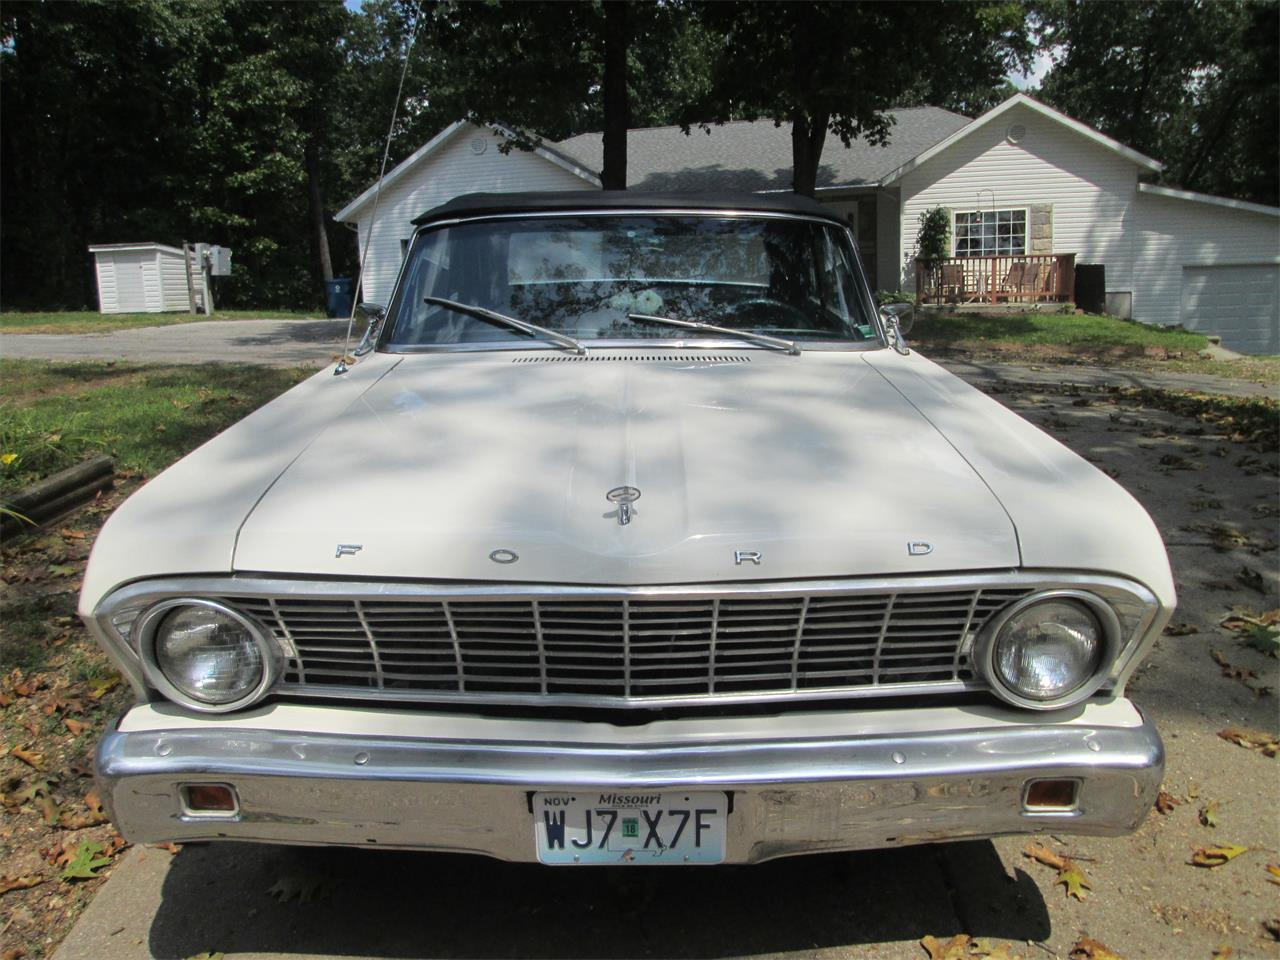 Large Picture of '64 Falcon located in Kimberling City Missouri - $14,500.00 Offered by a Private Seller - Q4YA